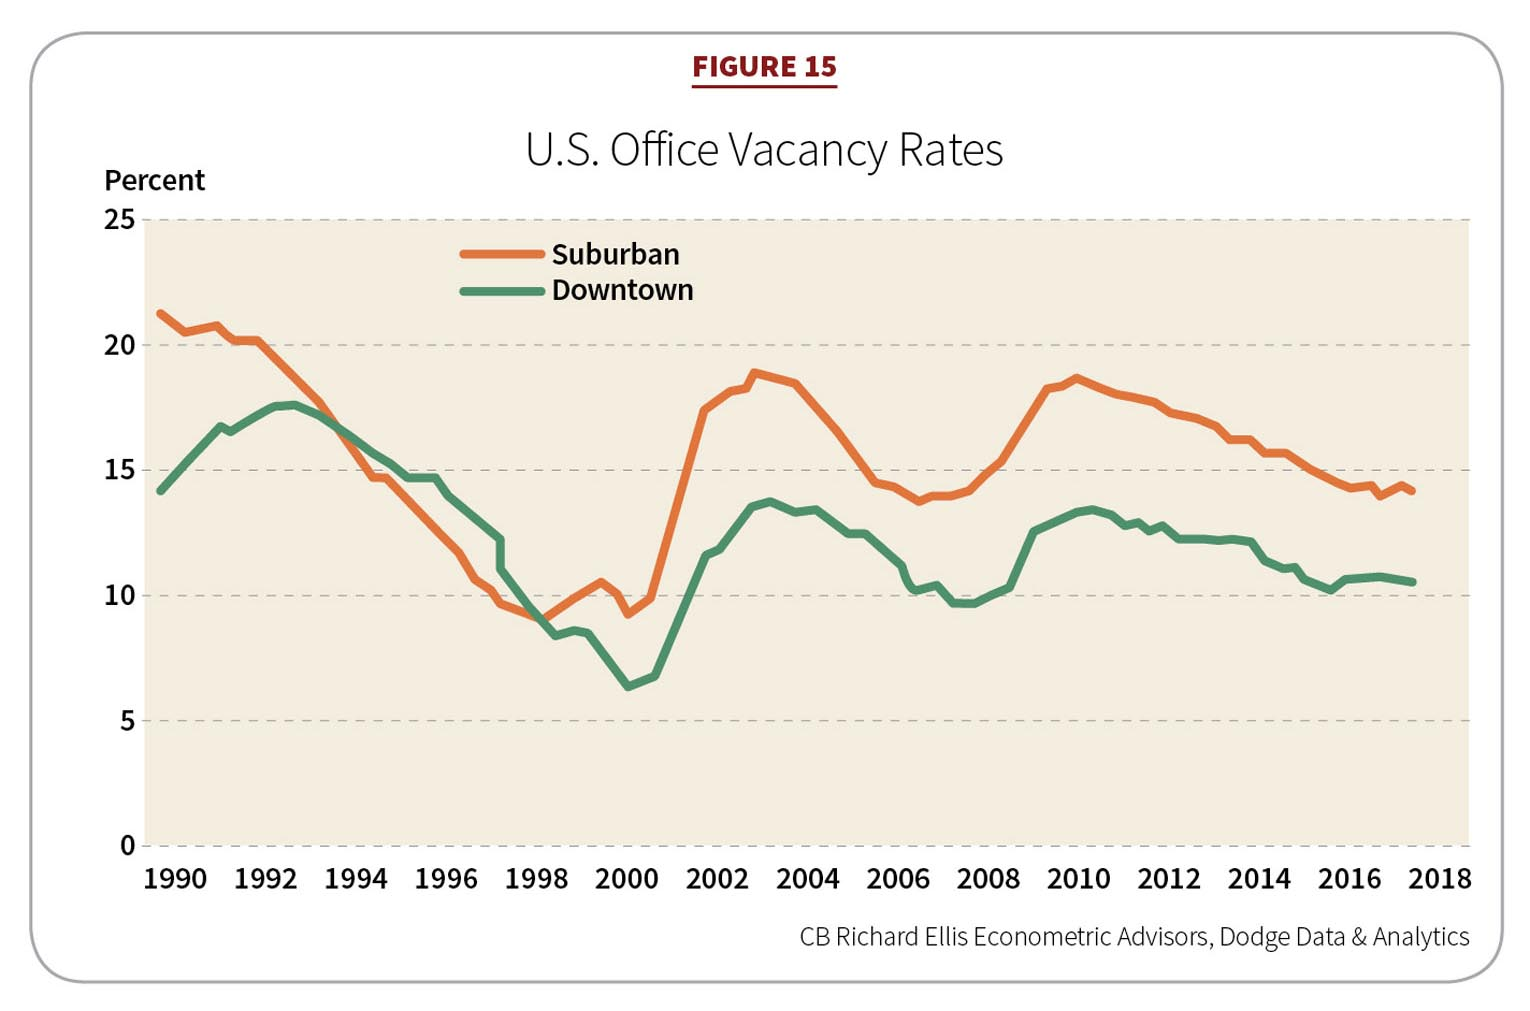 Figure15: U.S. Office Vacancy Rates